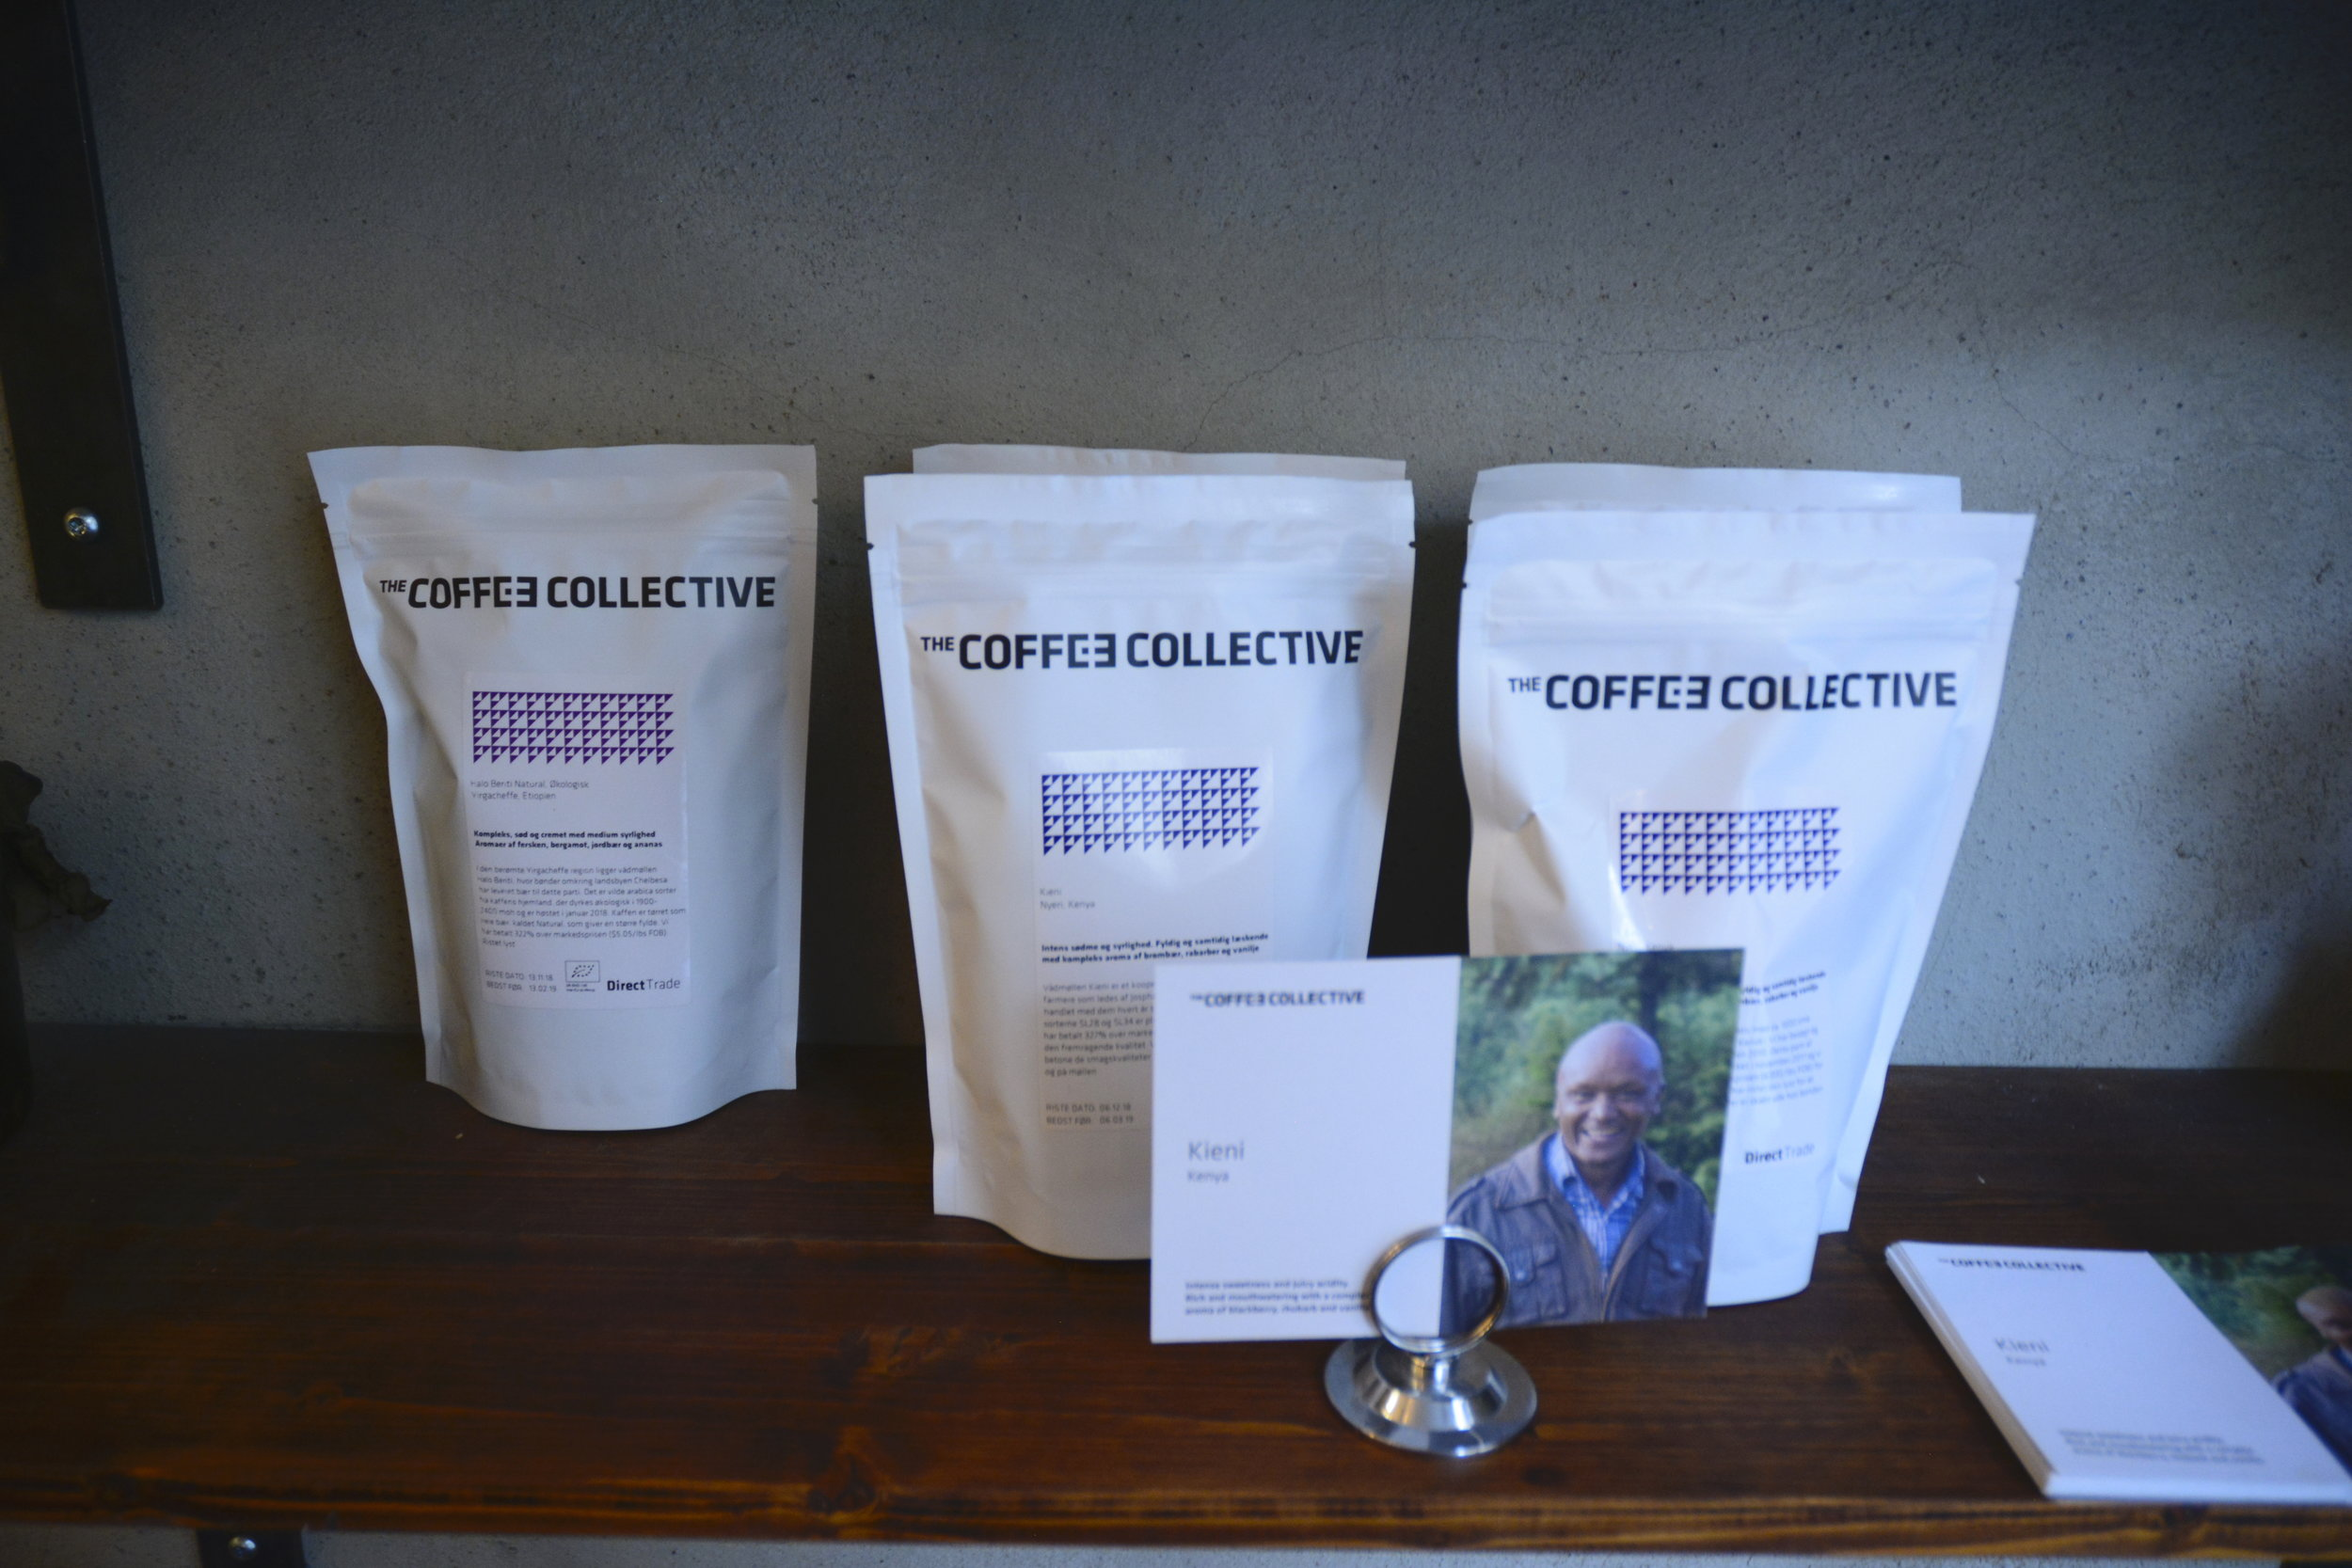 Proudly Serving Copenhagen-based roaster, The Coffee Collective